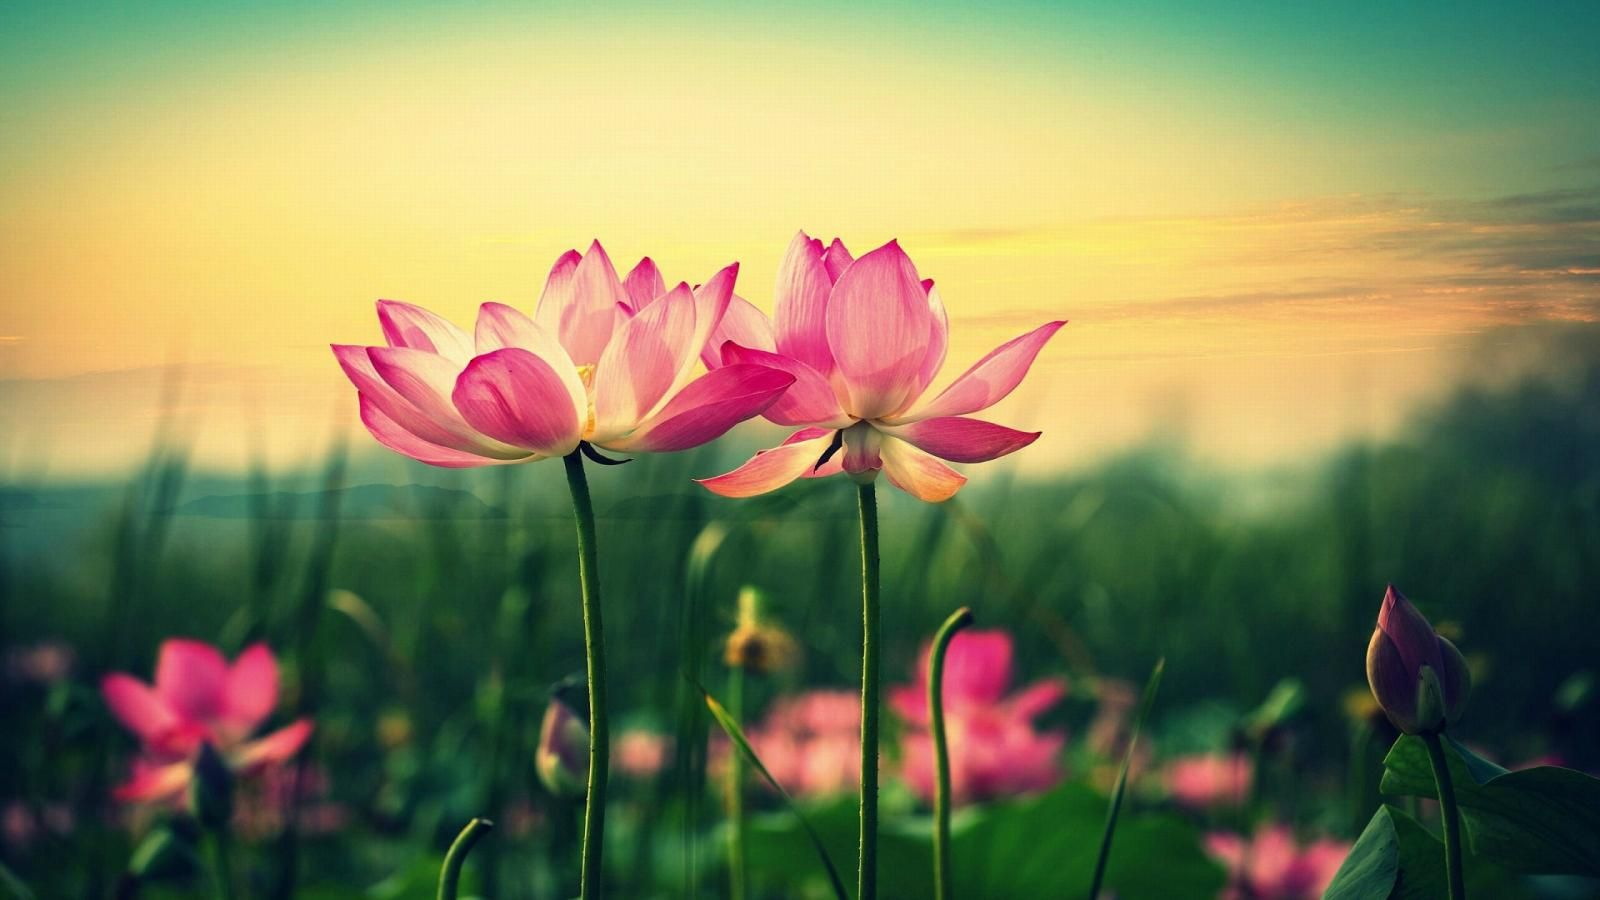 Lotus Flower Marvelous Background Wallpapers 1600x900 Resolution Wallpaper Wallpapers Lotus